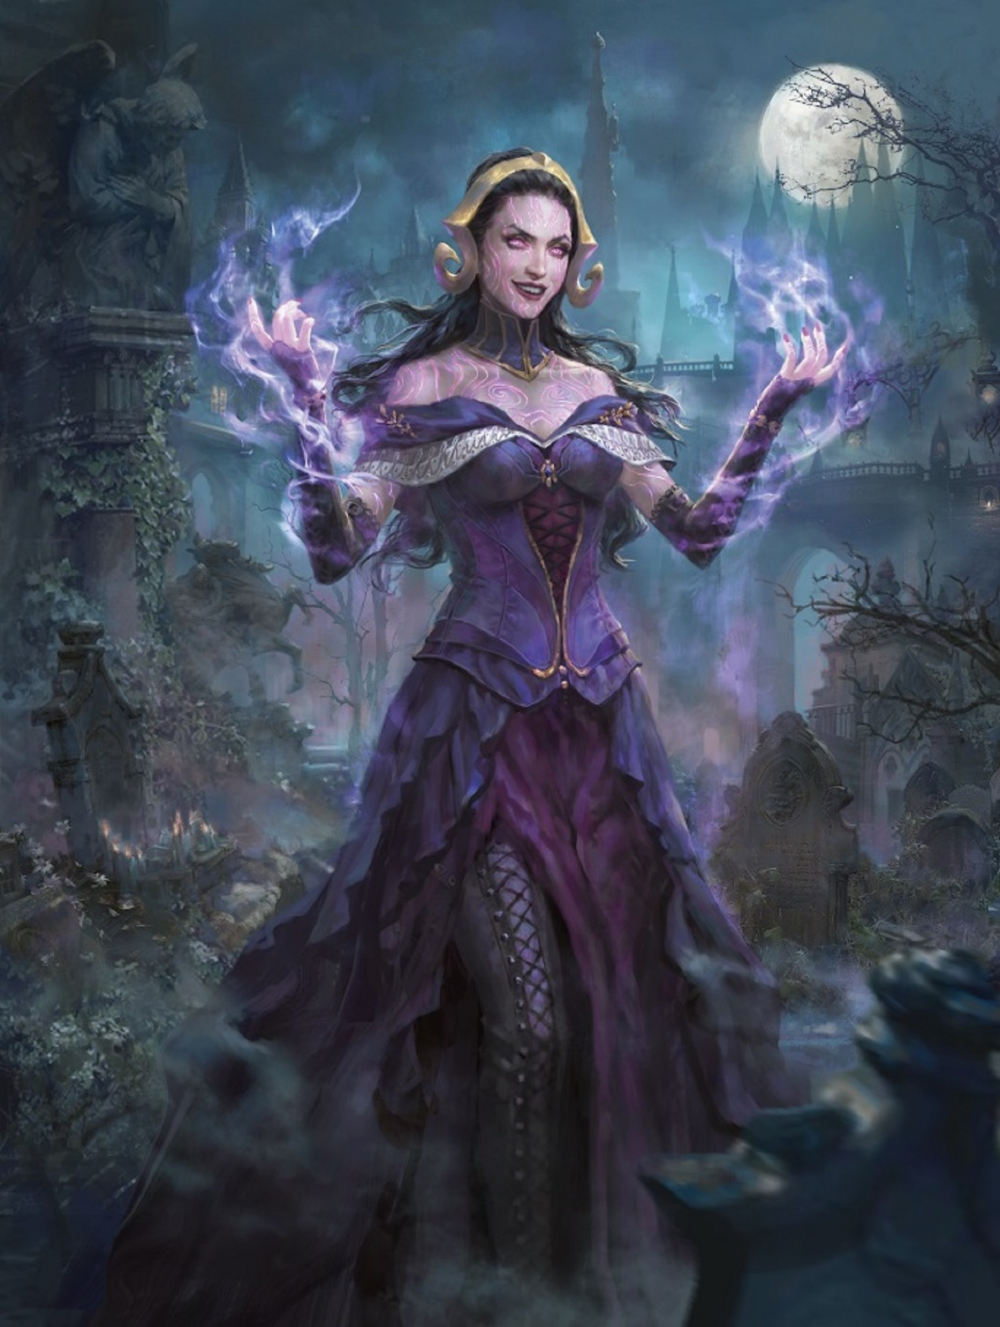 Check Out Magic The Gathering's Liliana, the Necromancer